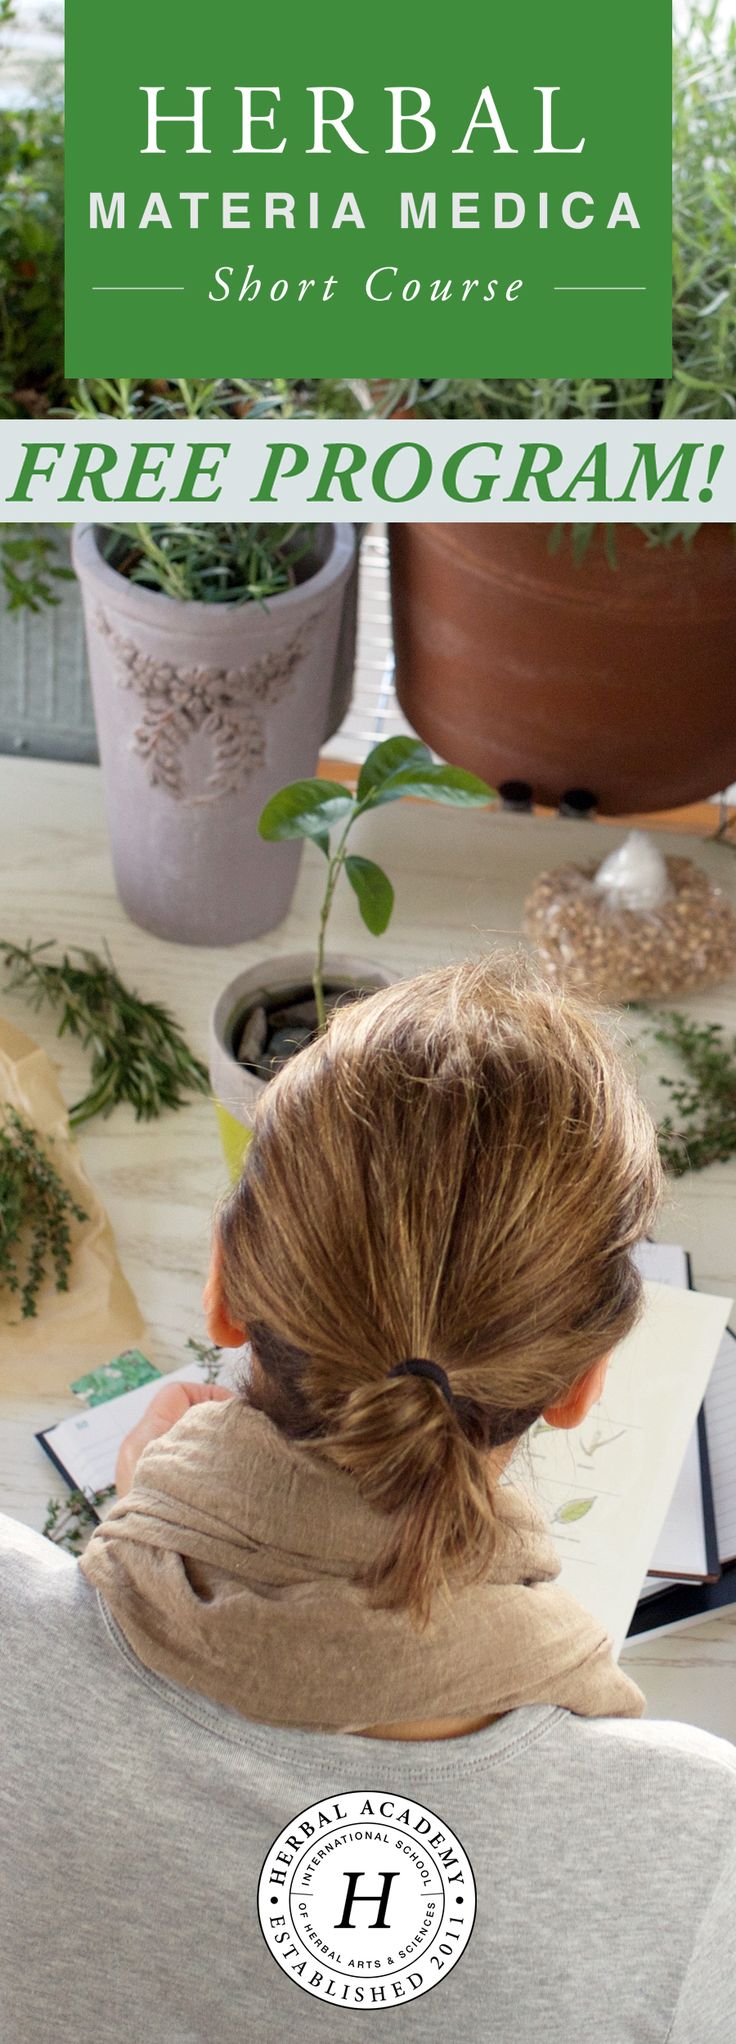 This FREE Herbal Materia Medica Course is designed for herbalists in the making, seasoned herbalists, and those of you not yet sure if this is the right path for you. This program will walk you through the process of studying one herb at a time, teaching you how to create (or add to) your materia medica. The Herbal Materia Medica Course will teach you this simple––yet powerful––study process and help you organize what we are learning into plant monographs for future reference.